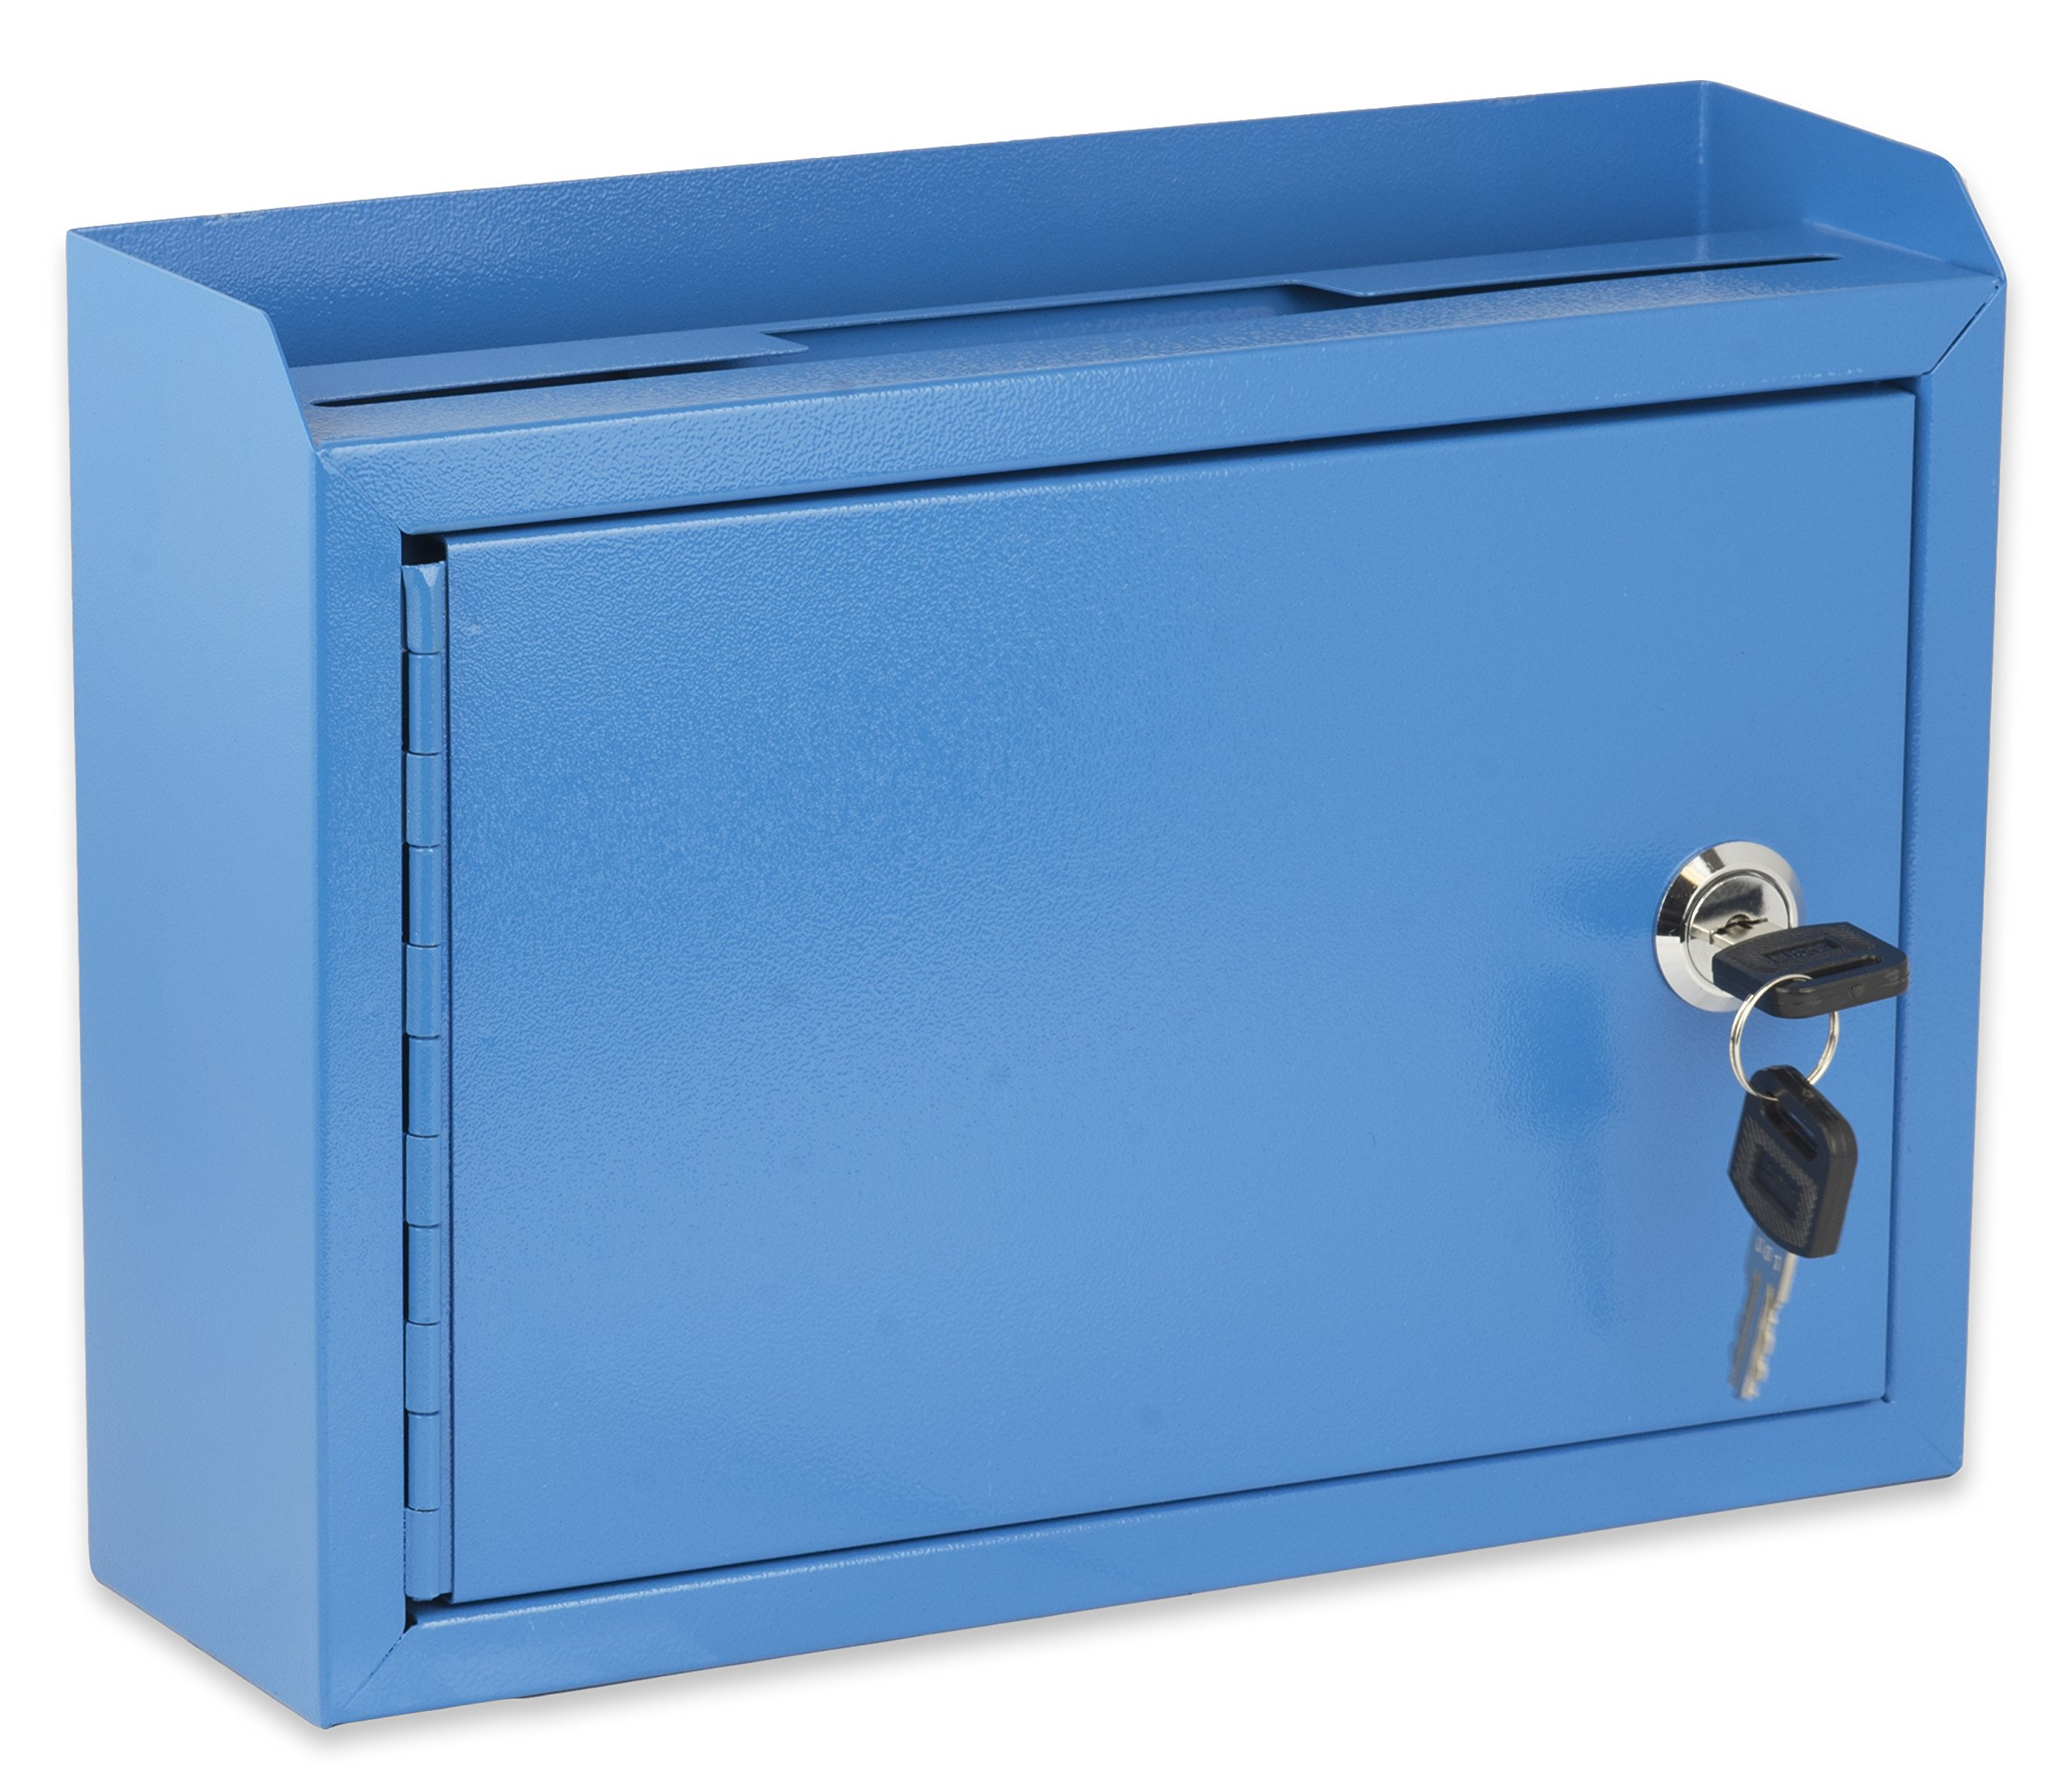 Adir Corp. Multi Purpose Medium Size Suggestion Box by Adir Corp.